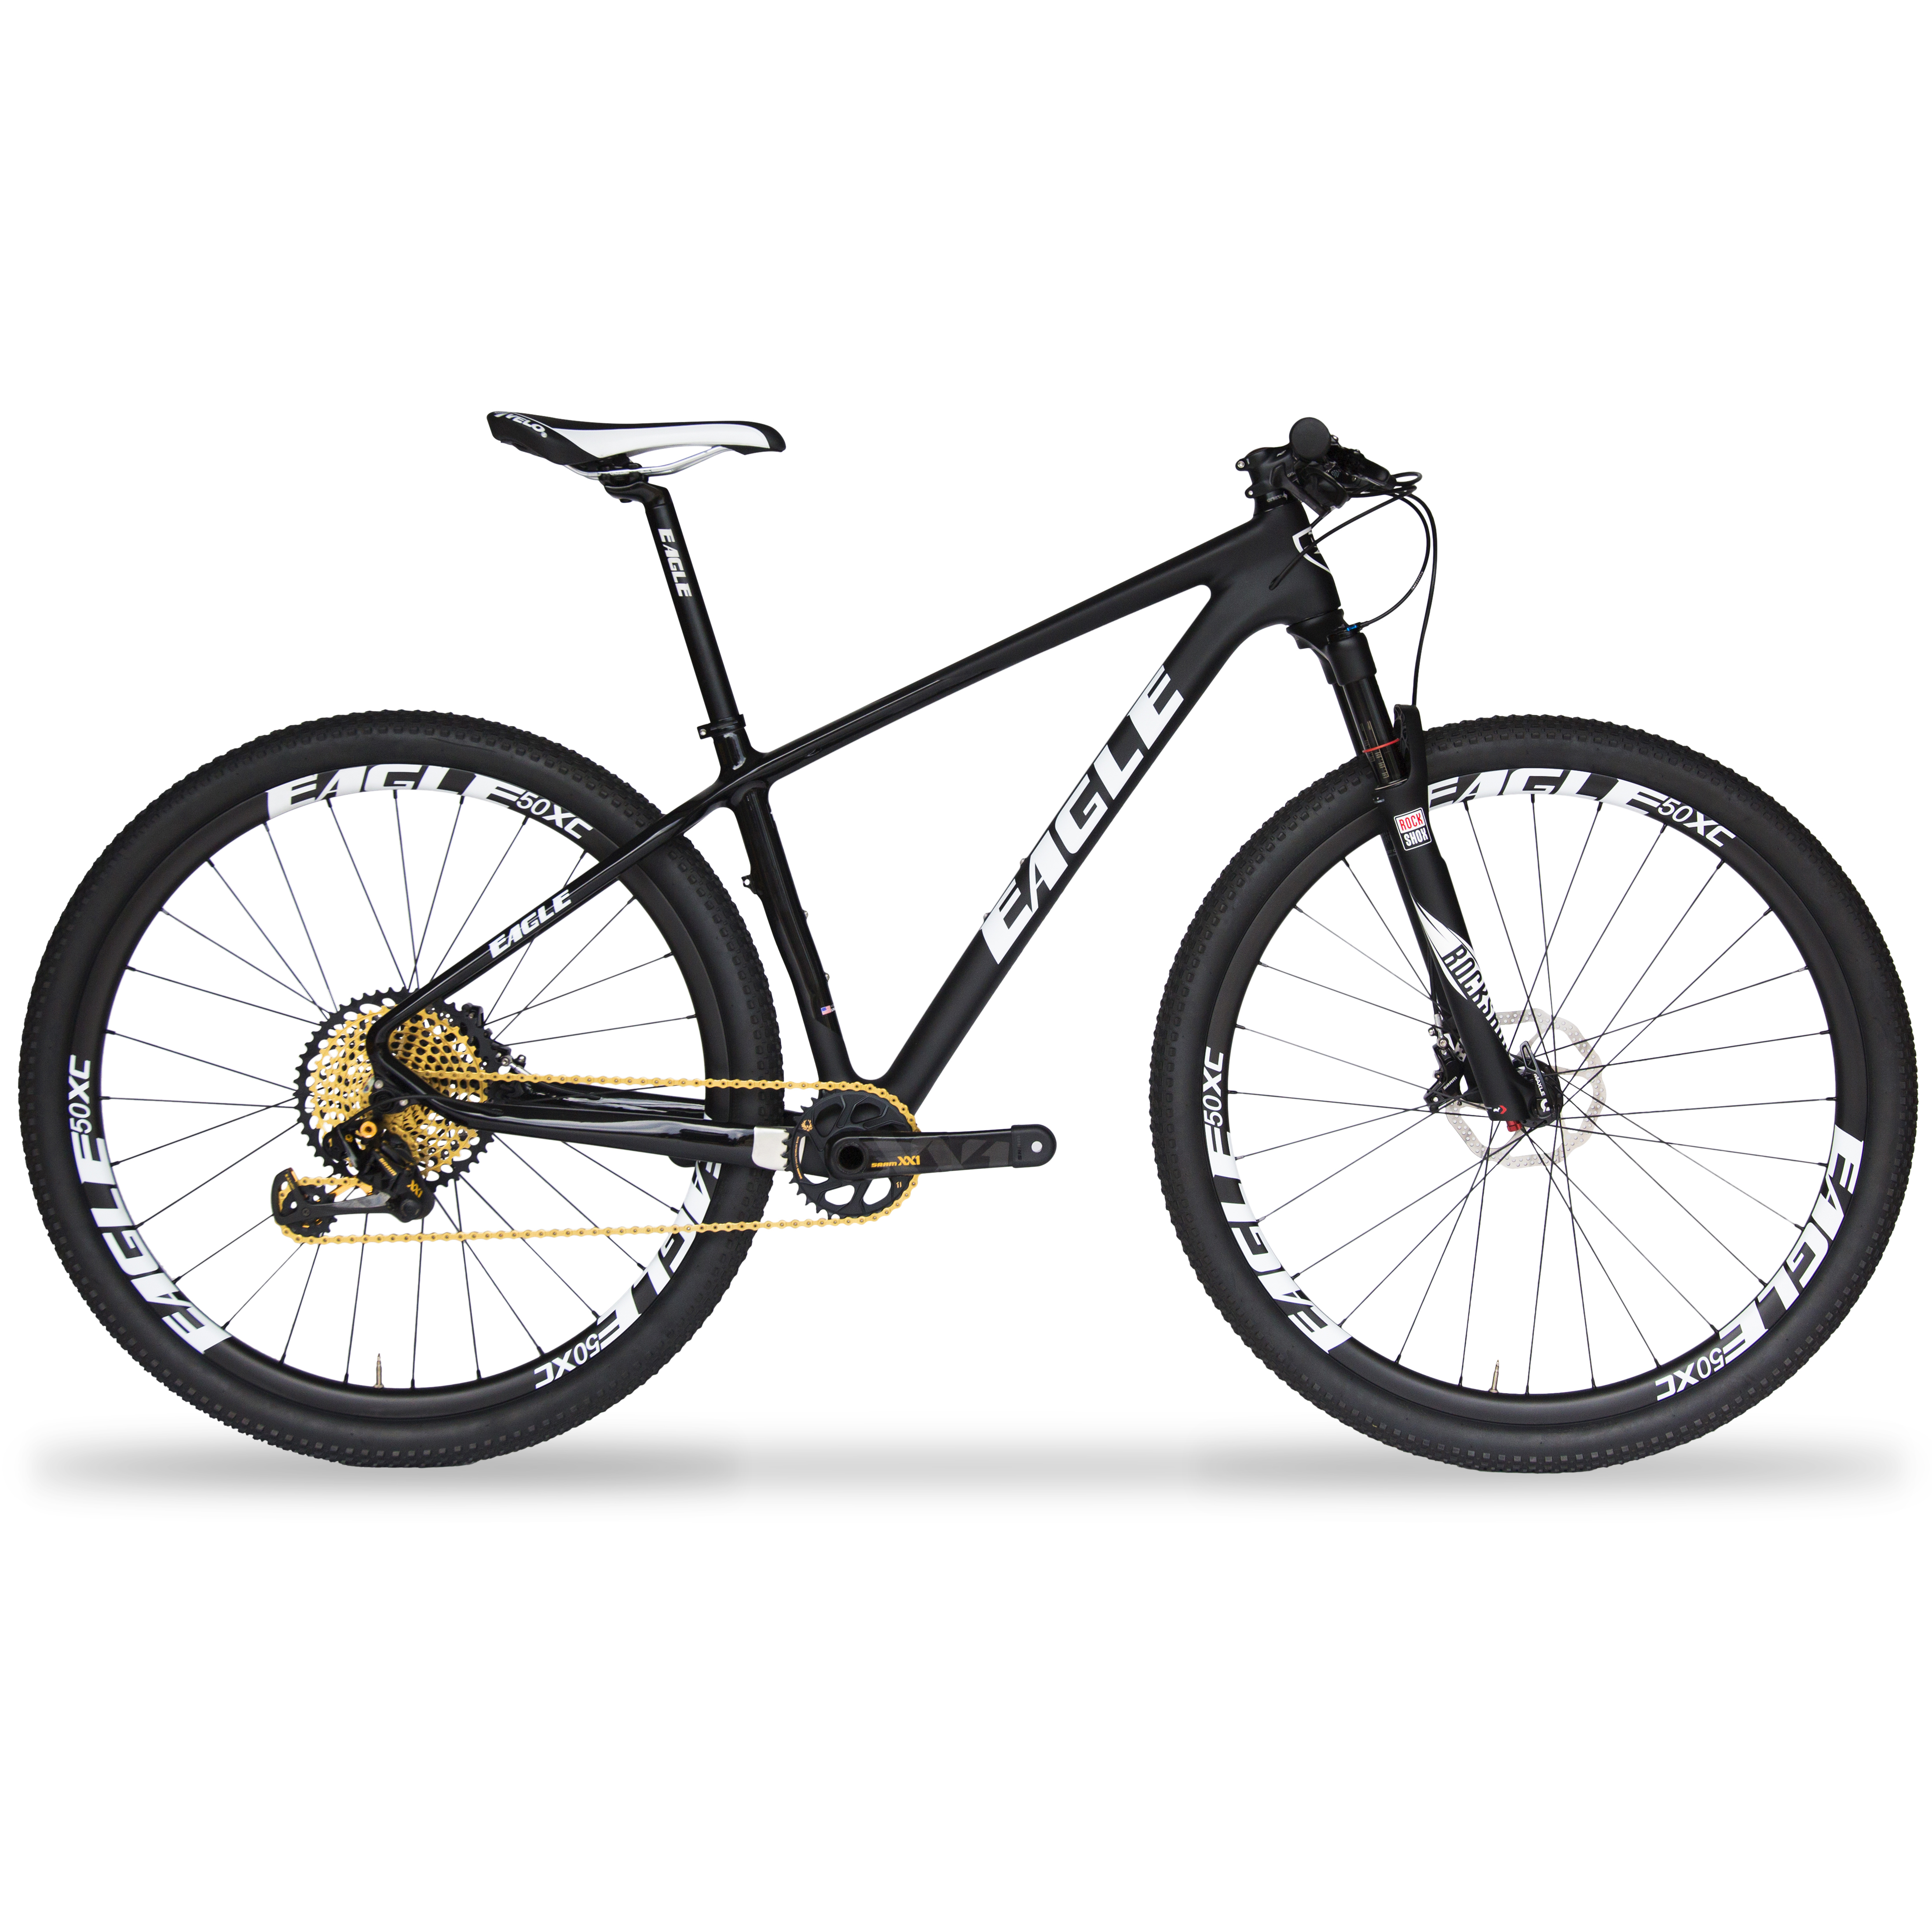 Eagle Patriot Gold Carbon Fiber Mountain Bike - SRAM XX1